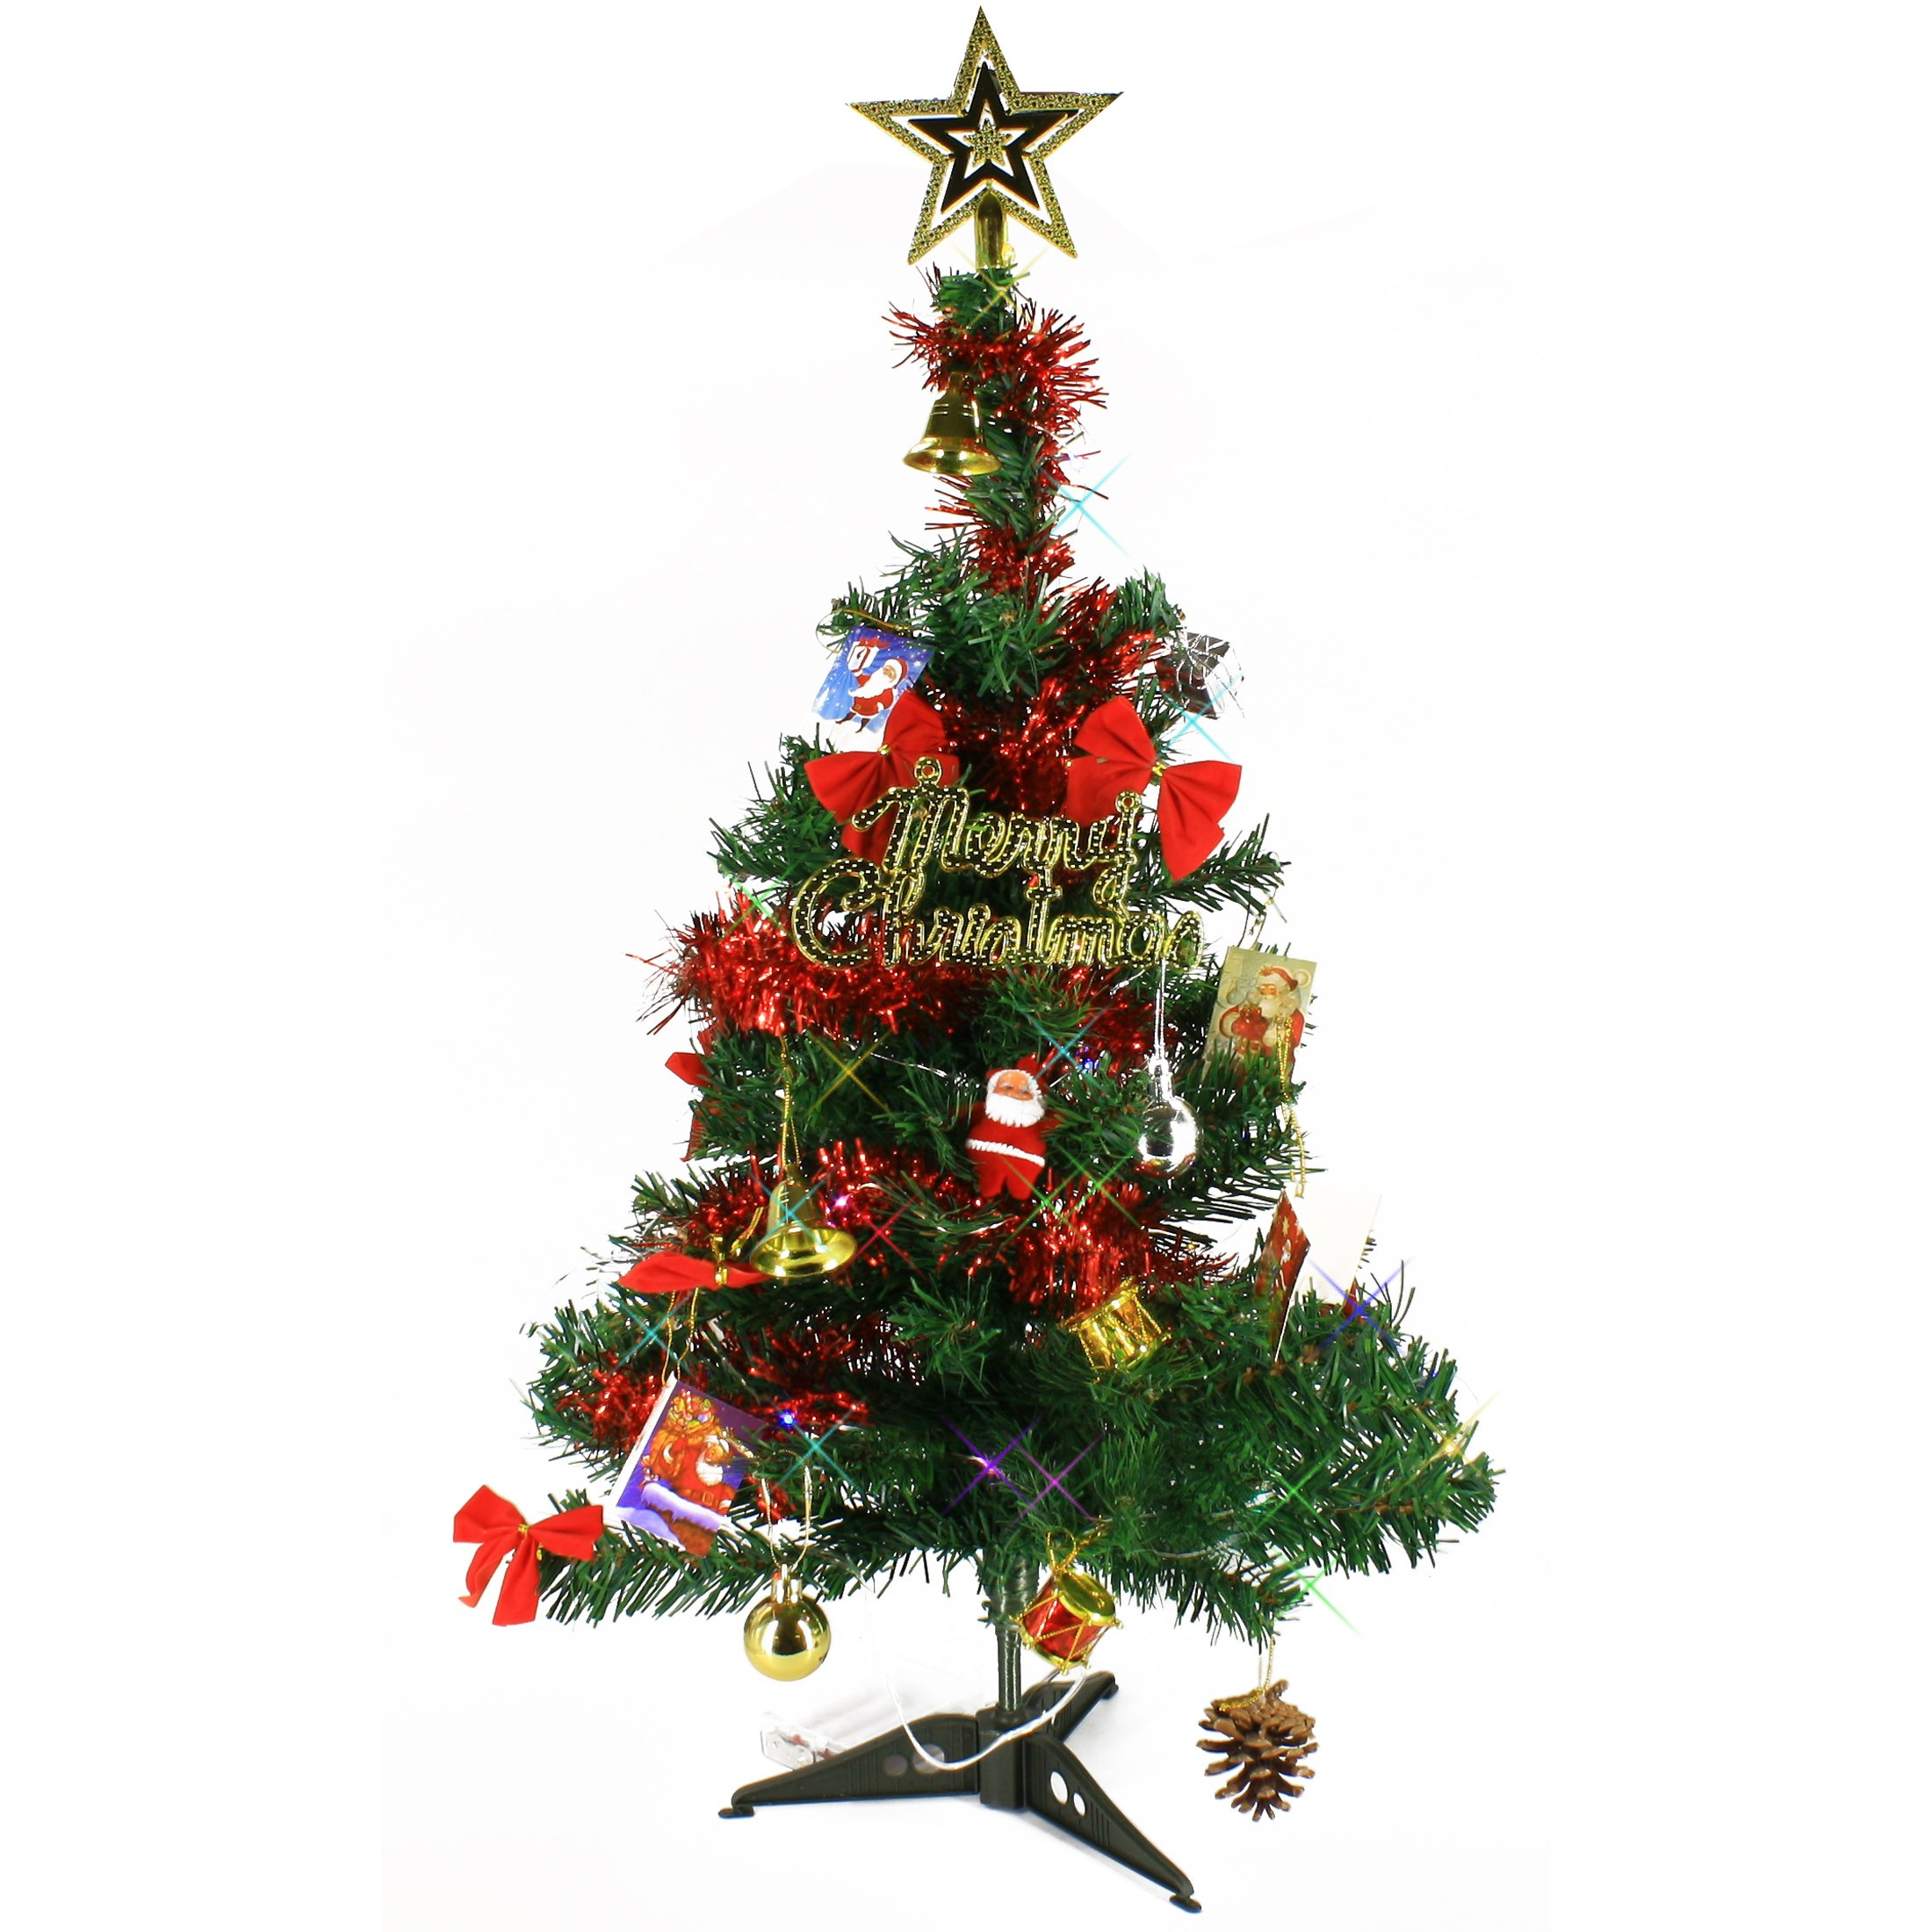 Tabletop Christmas Tree.Details About 2 Ft Artificial Mini Tabletop Christmas Tree Green With Multi Color Led Light